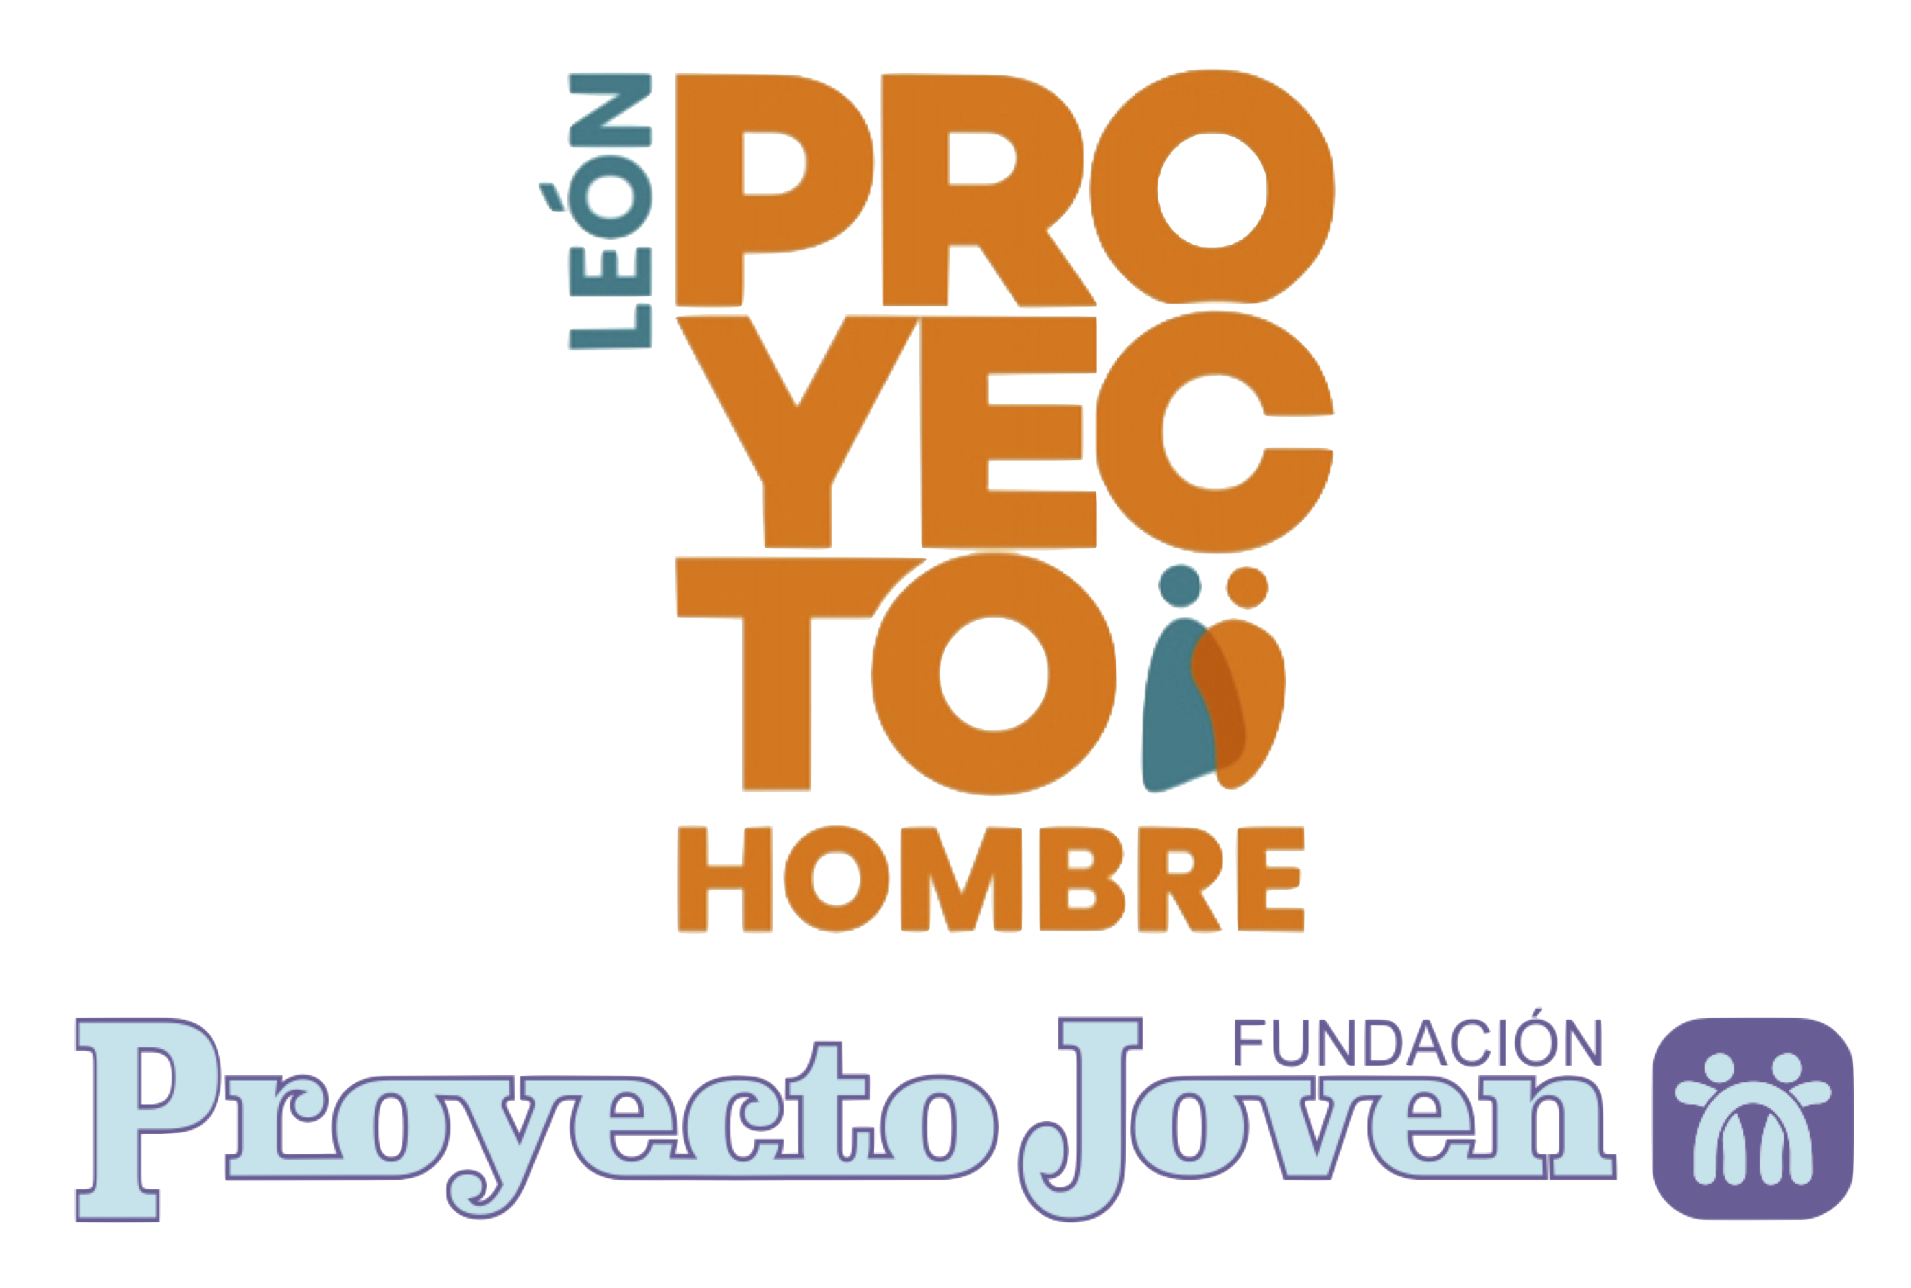 https://www.proyectojoven.org/wp-content/uploads/2021/05/footer.png